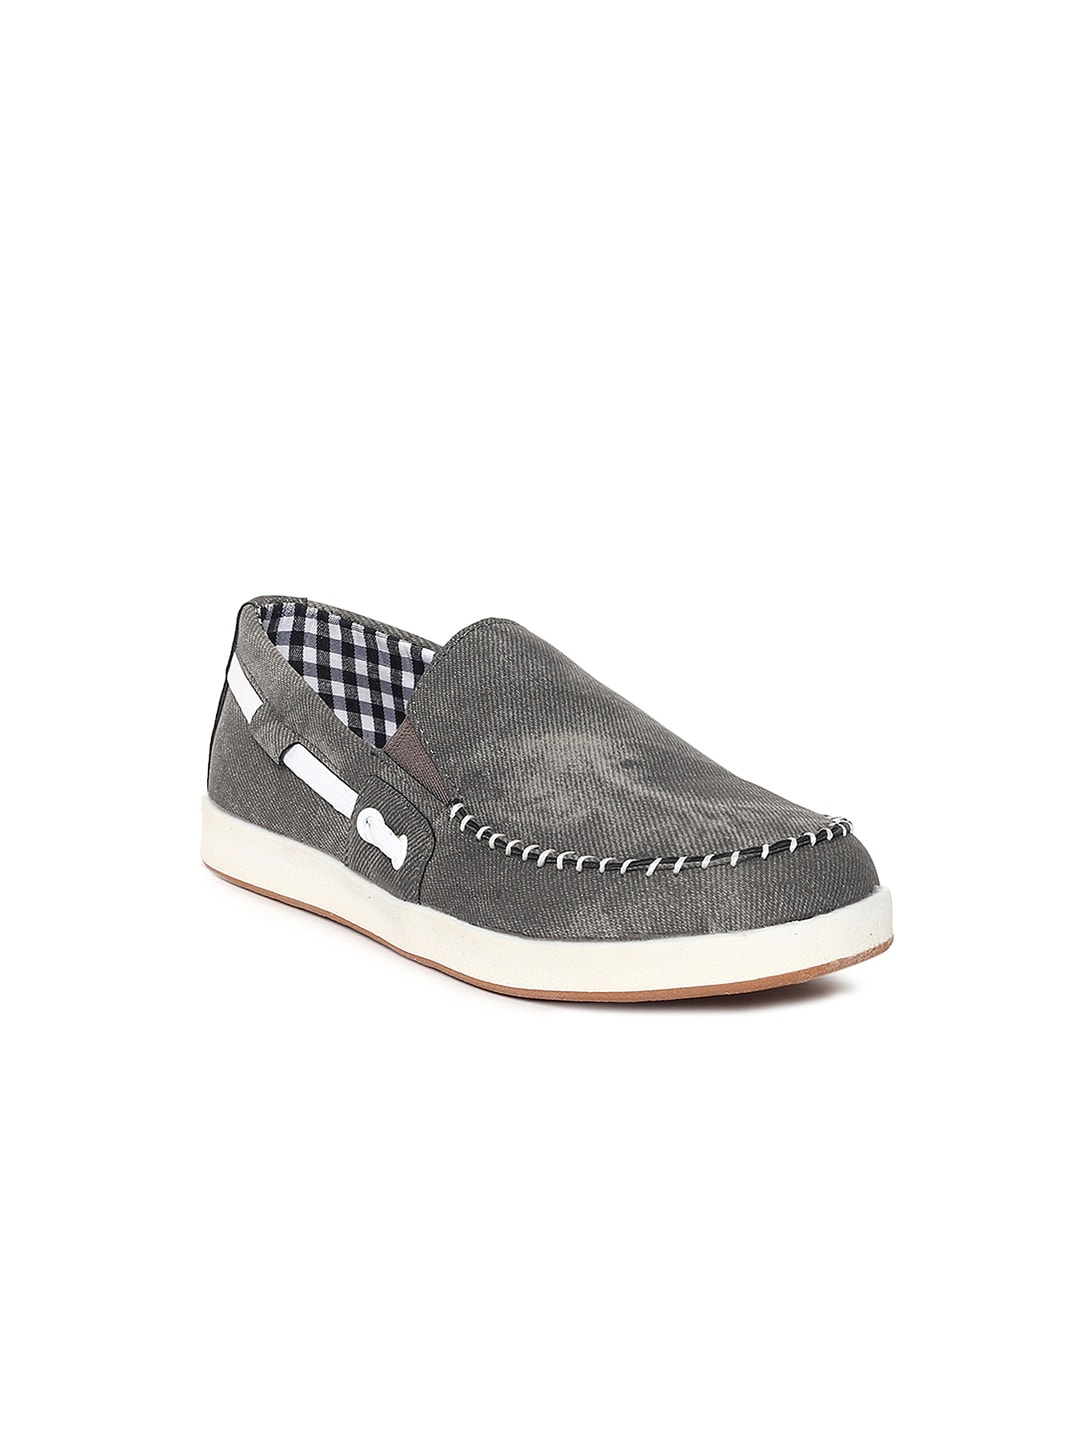 ed315778cac Footwear Online - Shop for Men